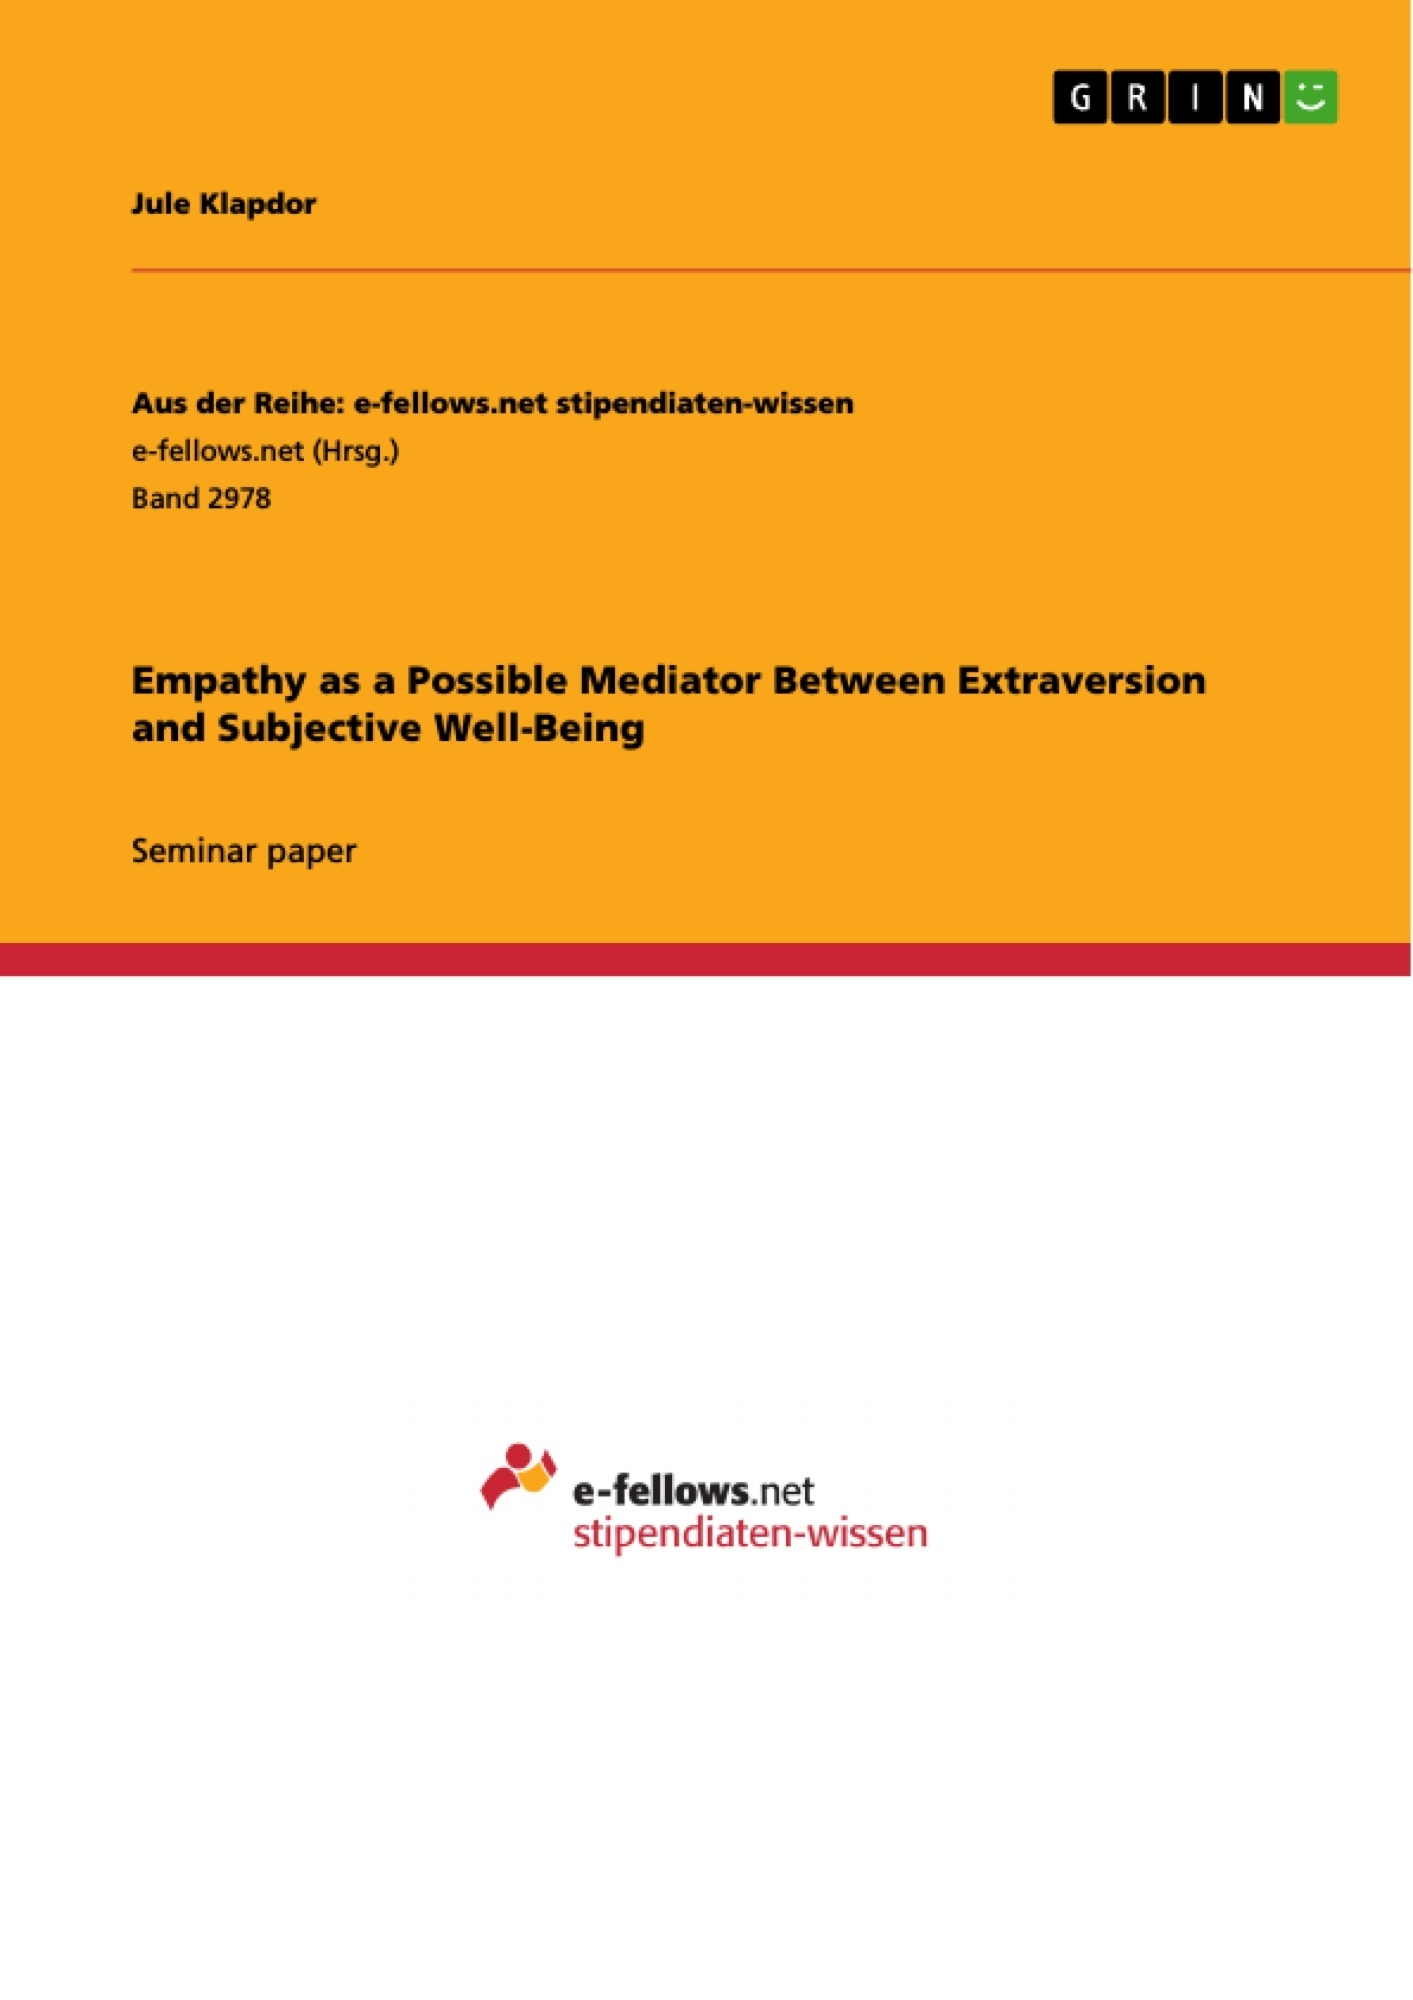 Title: Empathy as a Possible Mediator Between Extraversion and Subjective Well-Being